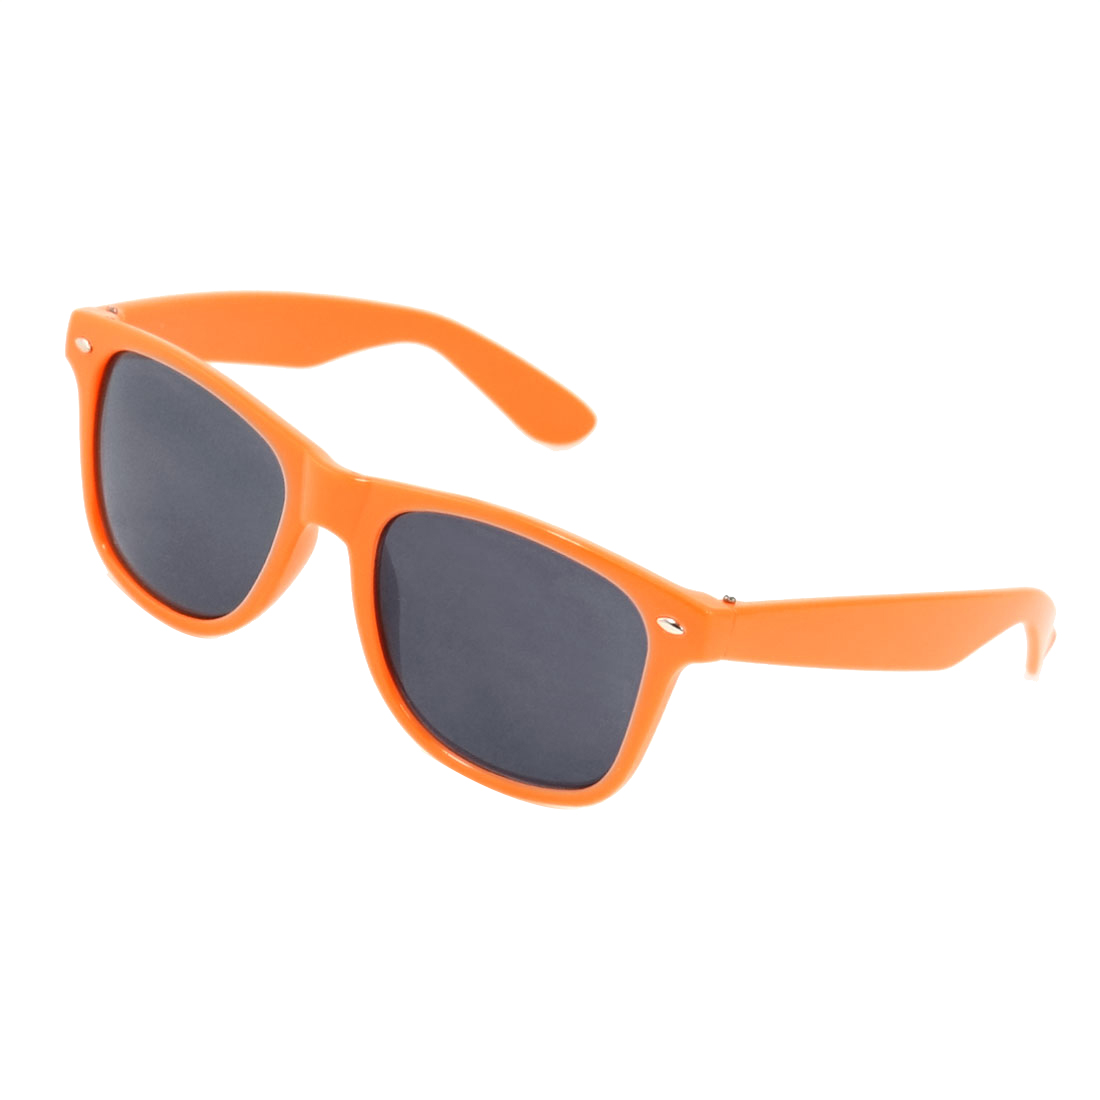 Ladies Protection Square Shape Gray Lens Orange Plastic Sunglasses